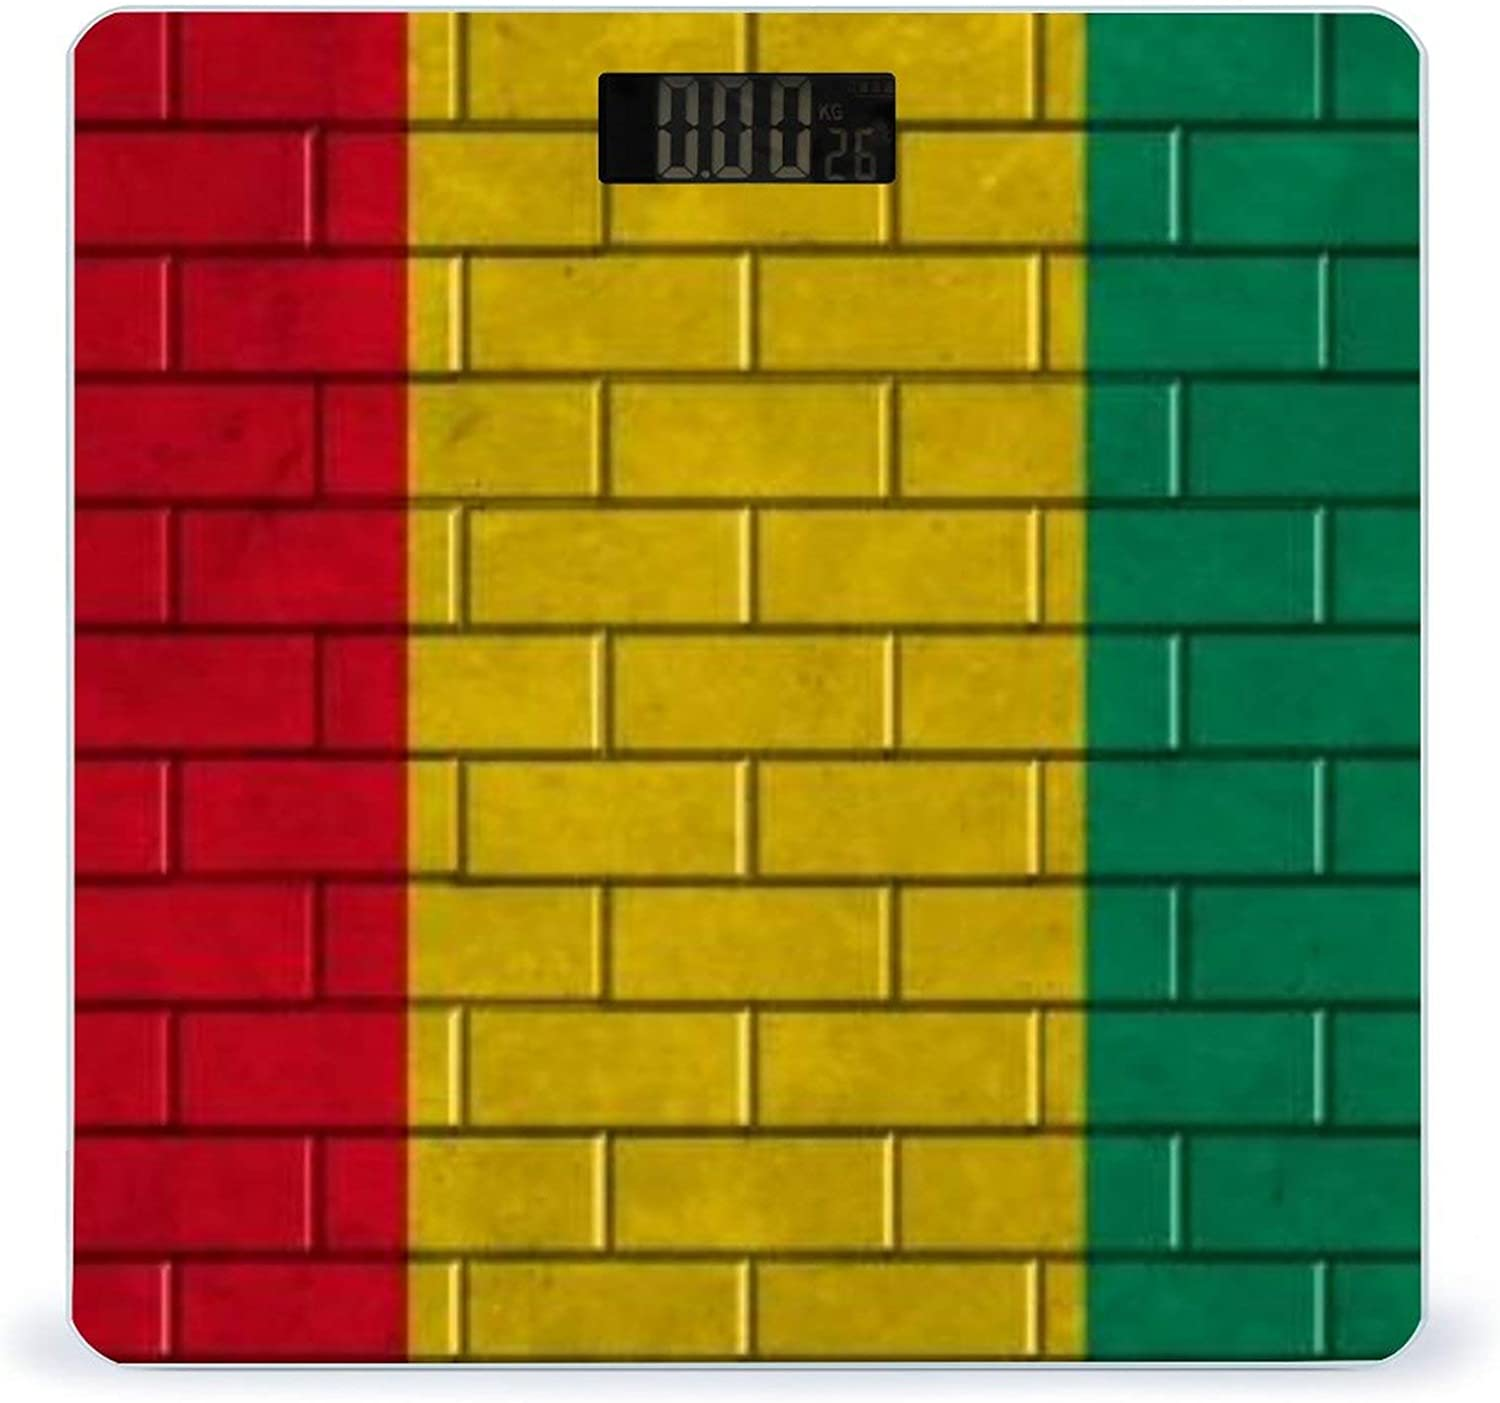 CHUFZSD Guinea Flag Painted On A Brick Wall Accurate Financial sales sale Max 54% OFF Smar Highly